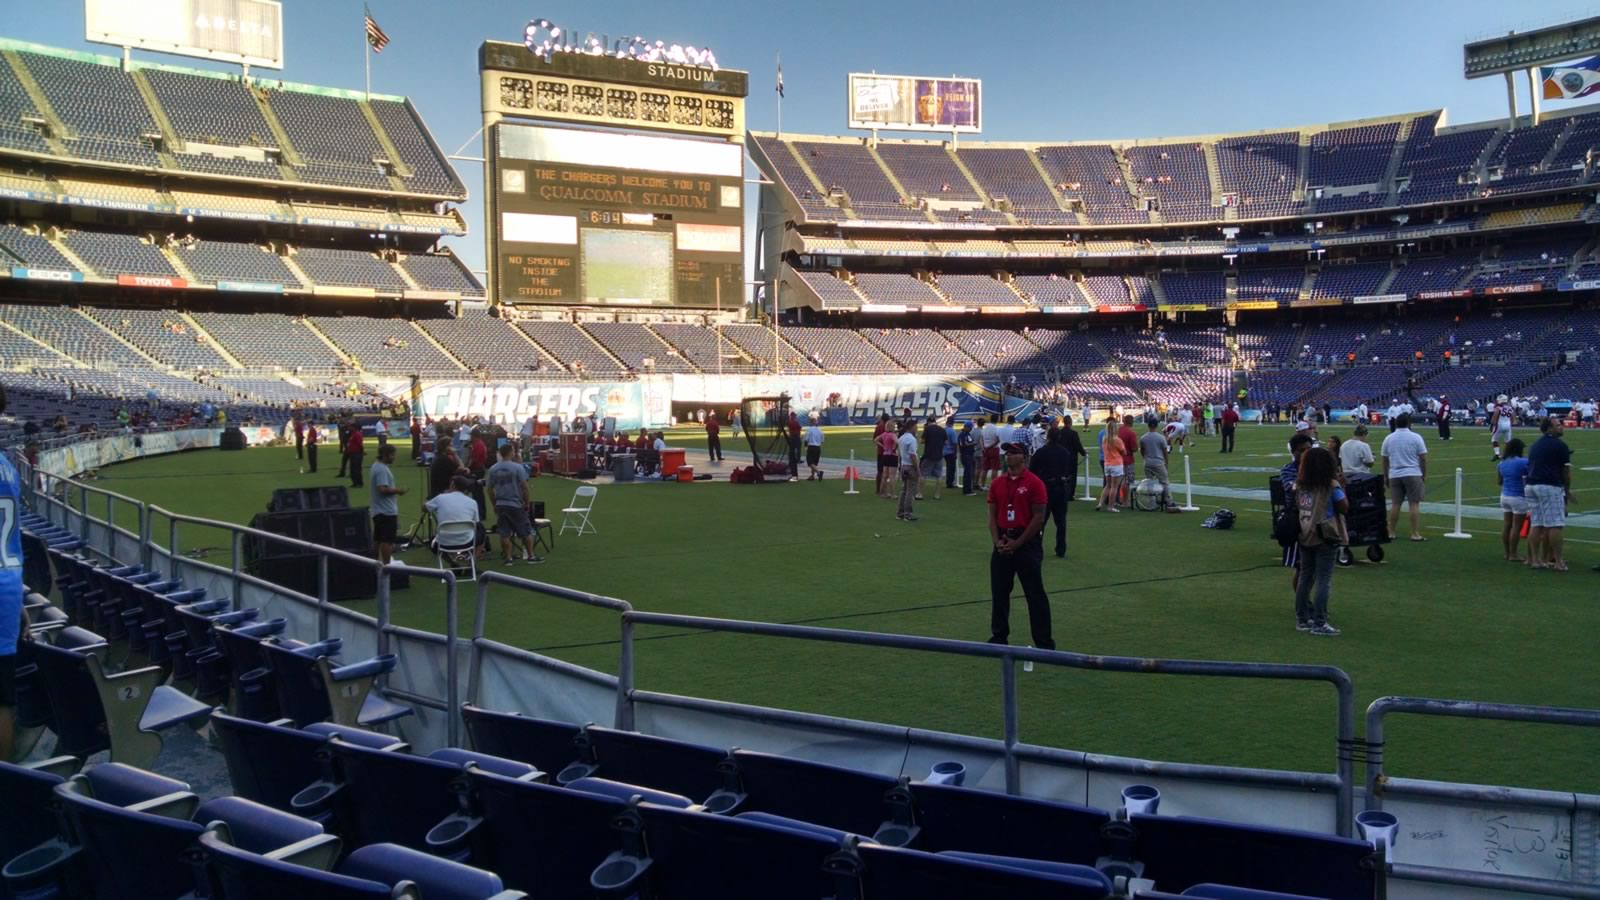 Seat View for Qualcomm Stadium Field 11, Row 5, Seat 8